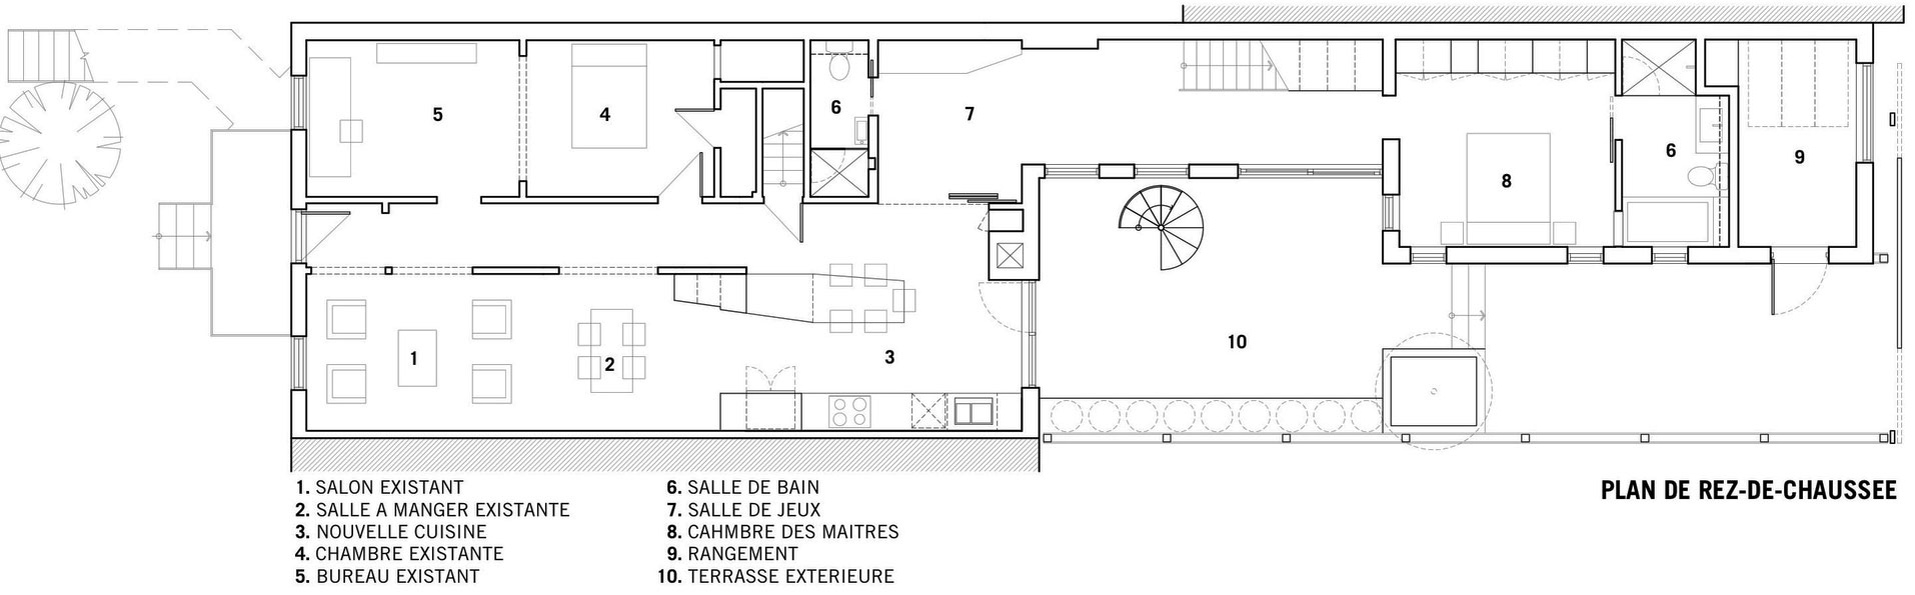 Ground Floor Plan, Contemporary Extension in Rosemont-Petite-Patrie, Canada